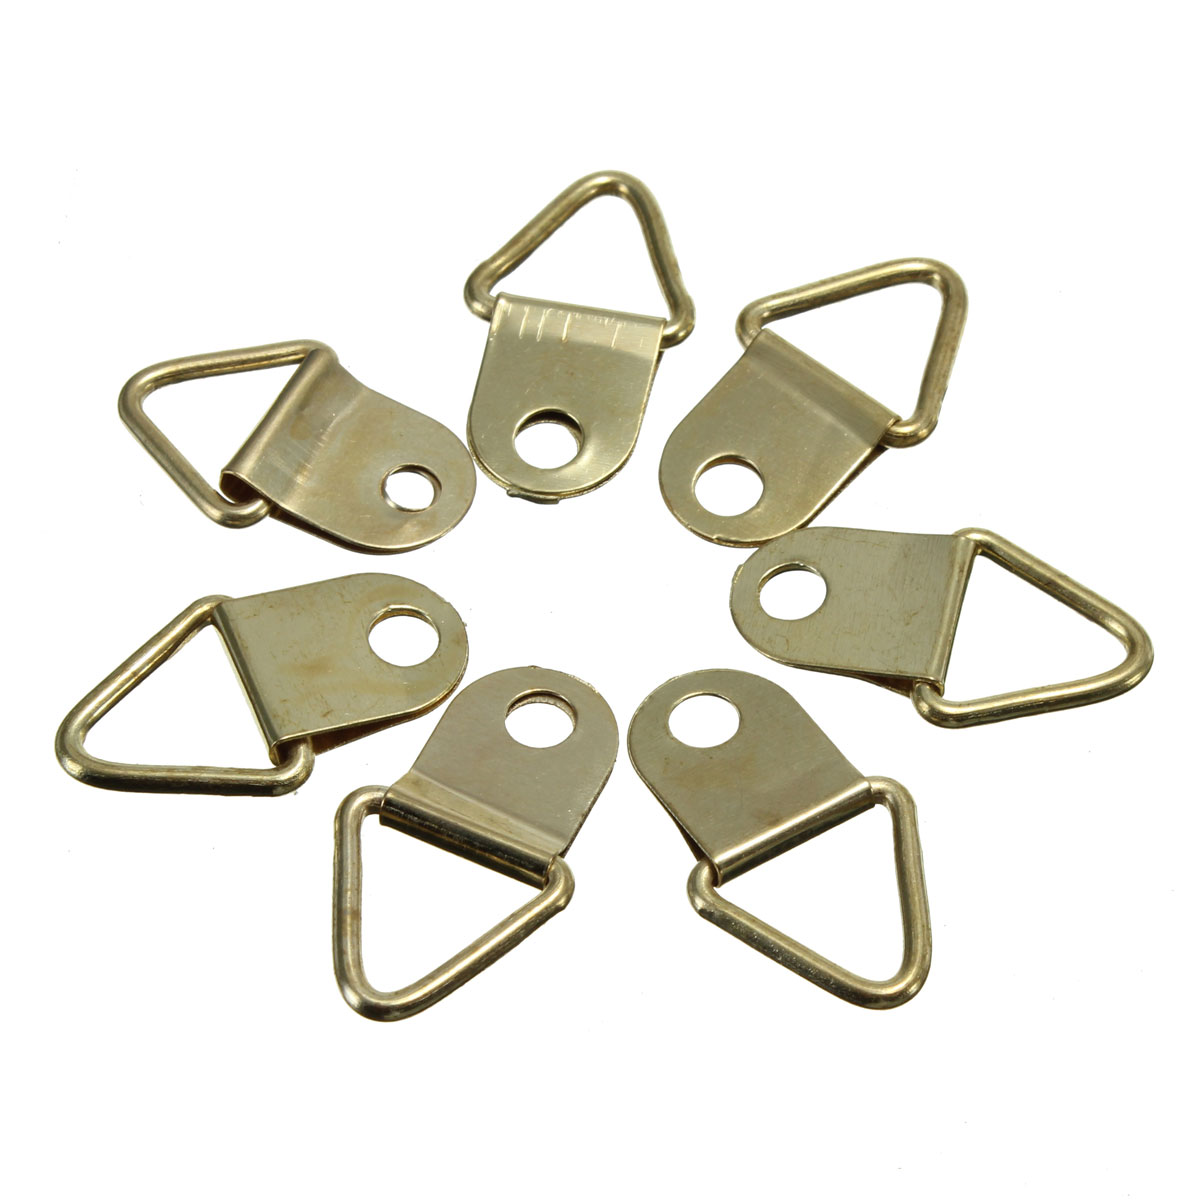 50pcs picture hangers golden brass triangle photo picture frame 50pcs picture hangers golden brass triangle photo picture frame wall mount hanger hook ring iron in picture hangers from home improvement on aliexpress jeuxipadfo Images